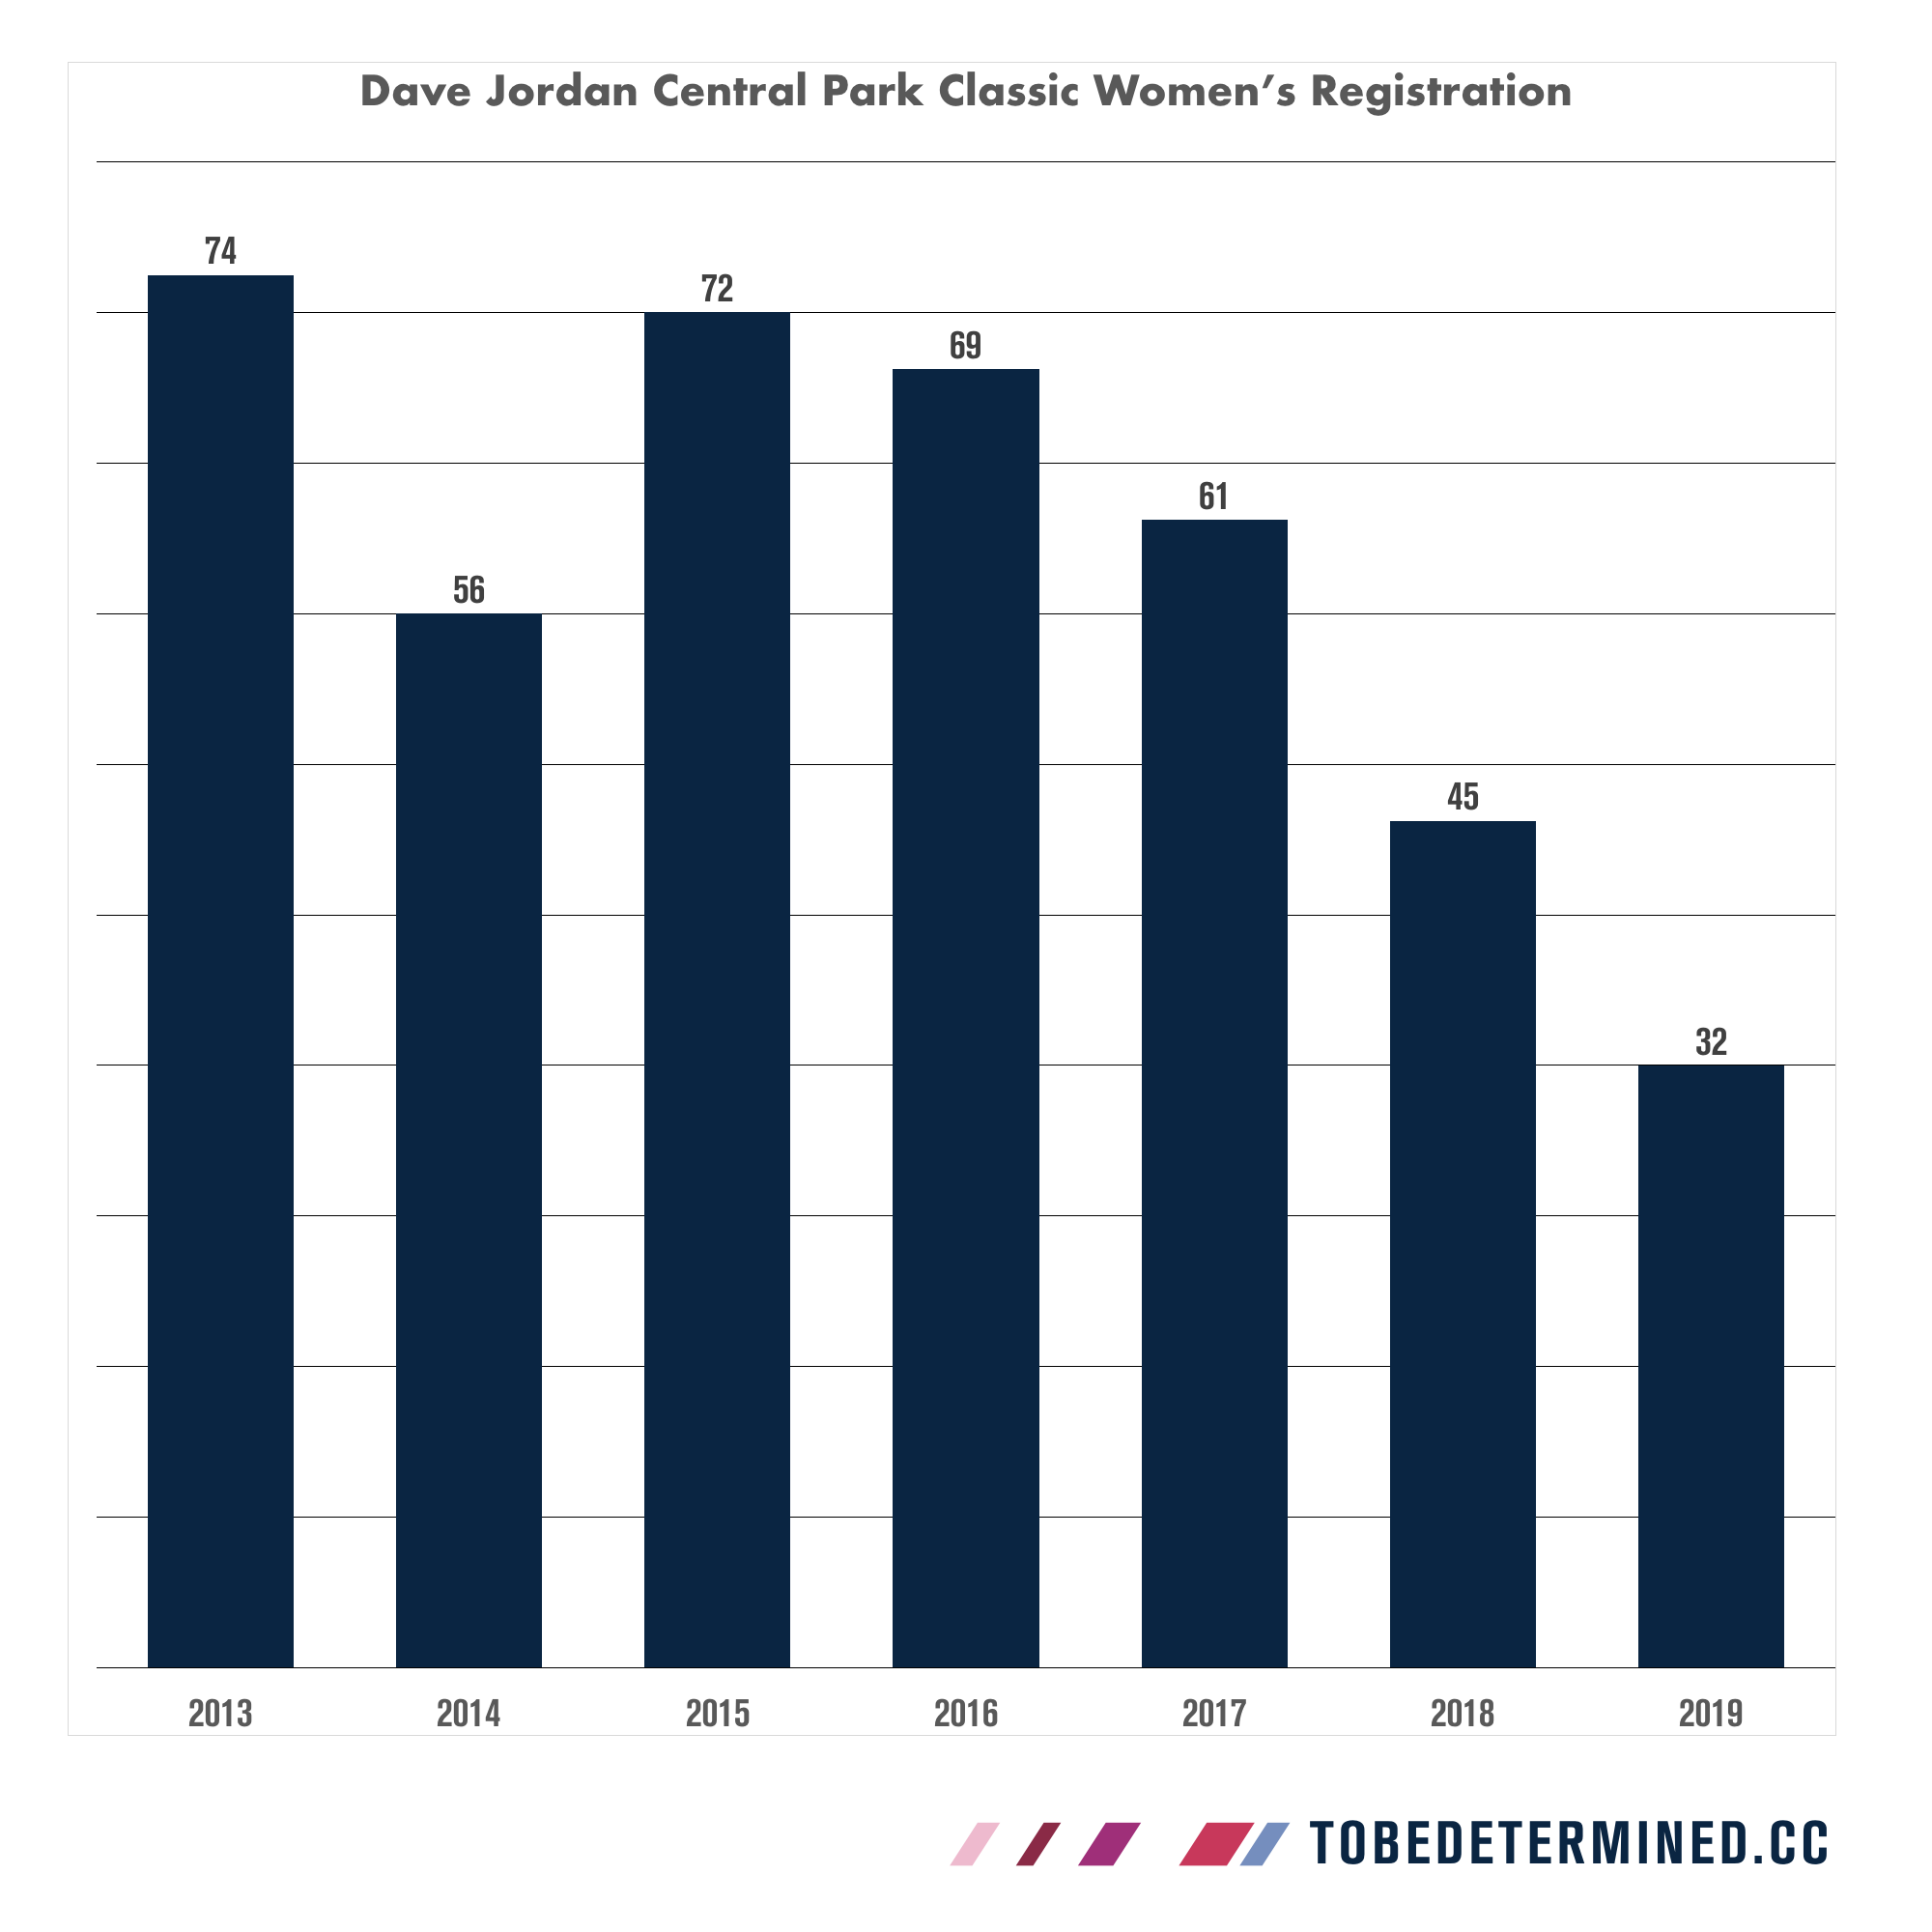 D2019 is shaping up to have the lowest Women's field turnout in the history of the Dave Jordan Central Park Classic.